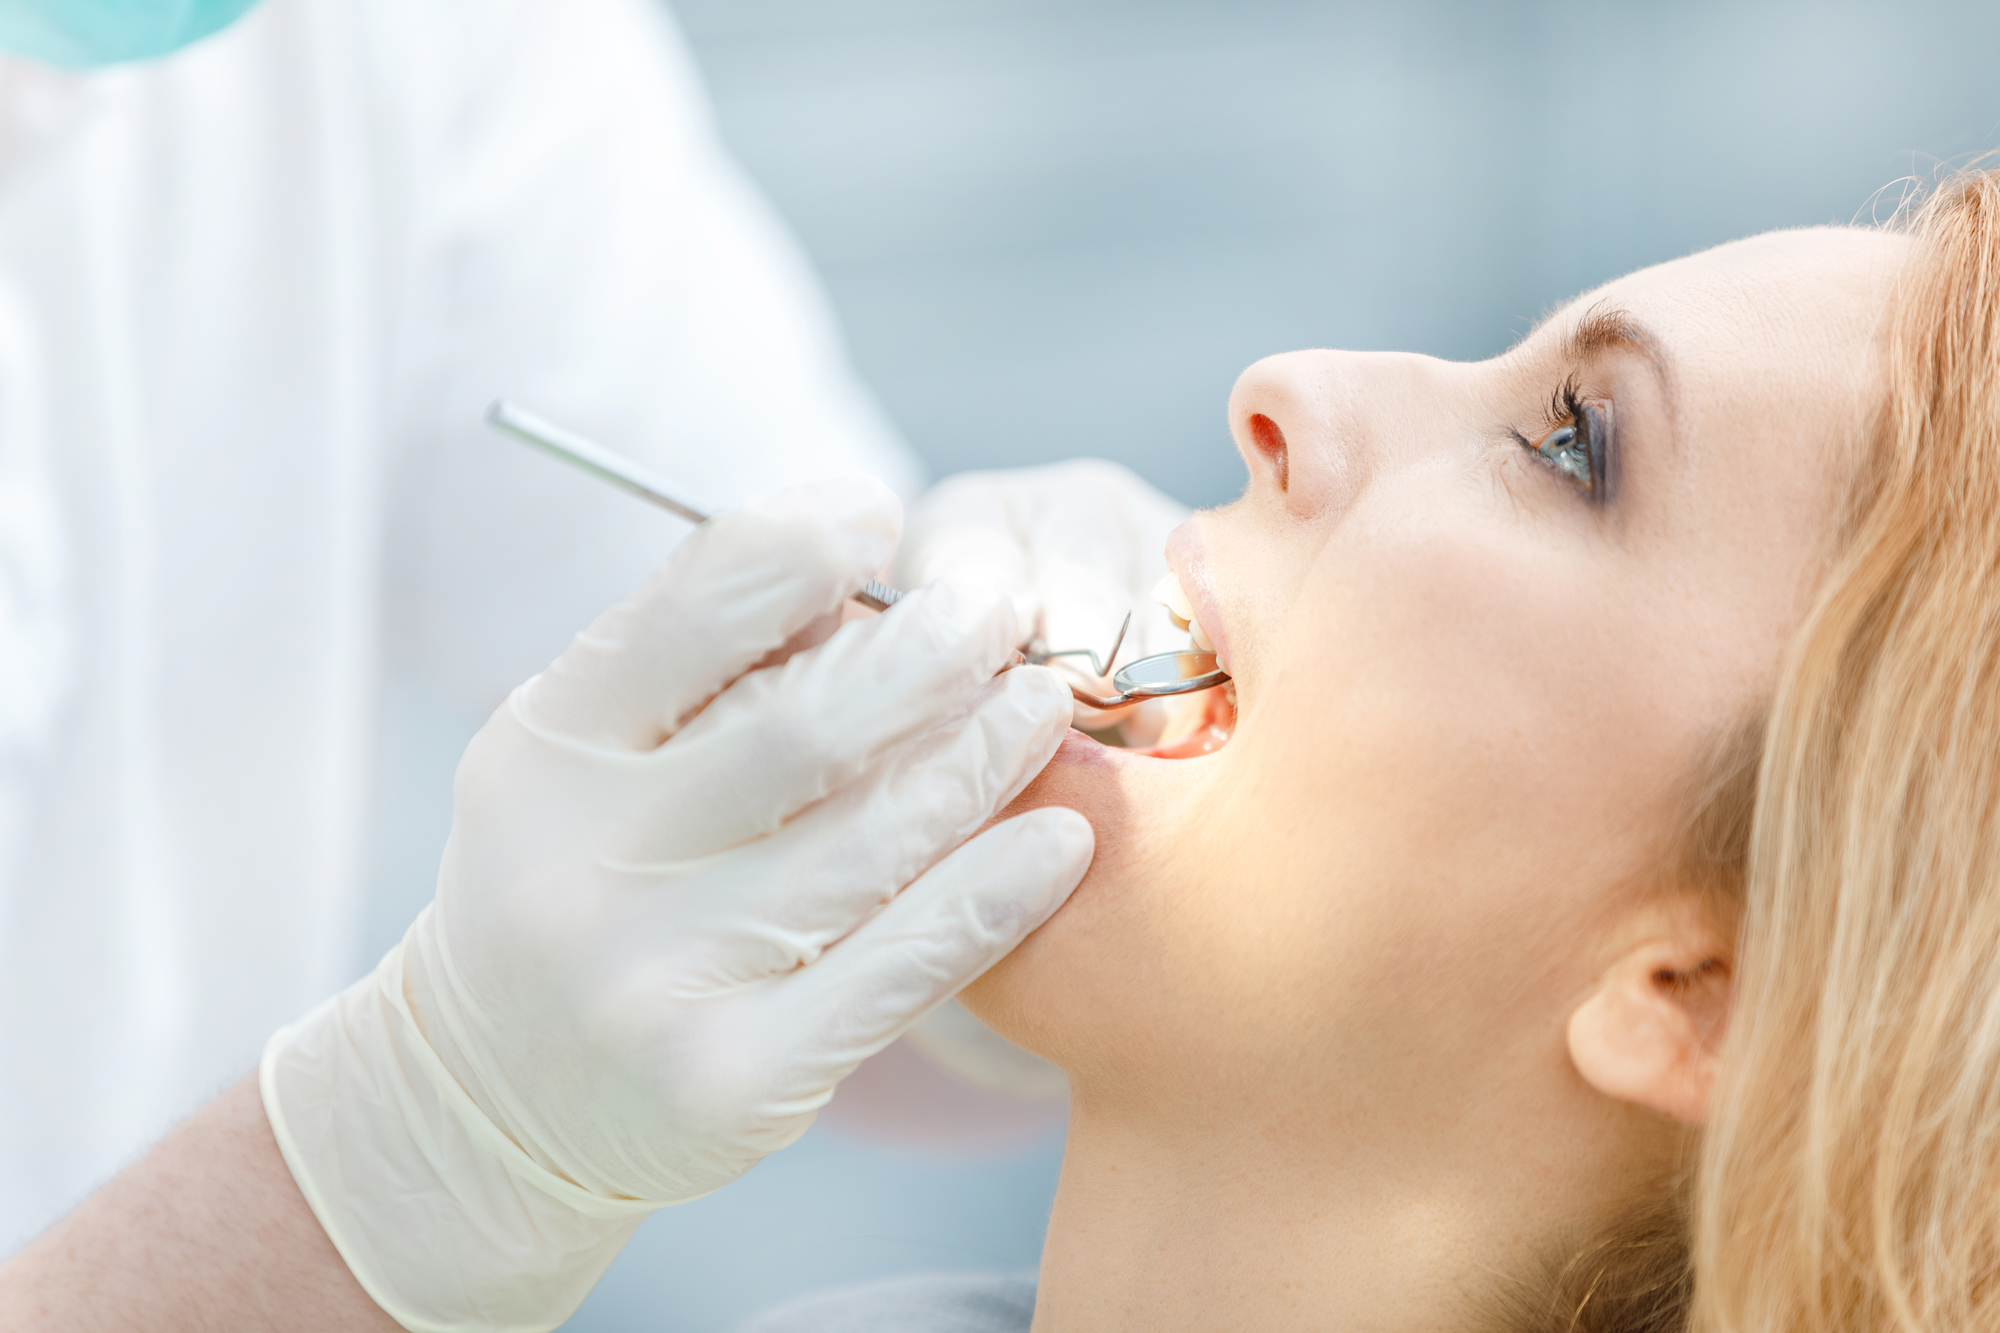 where can i find an oral surgeon in aventura to repair a frenum